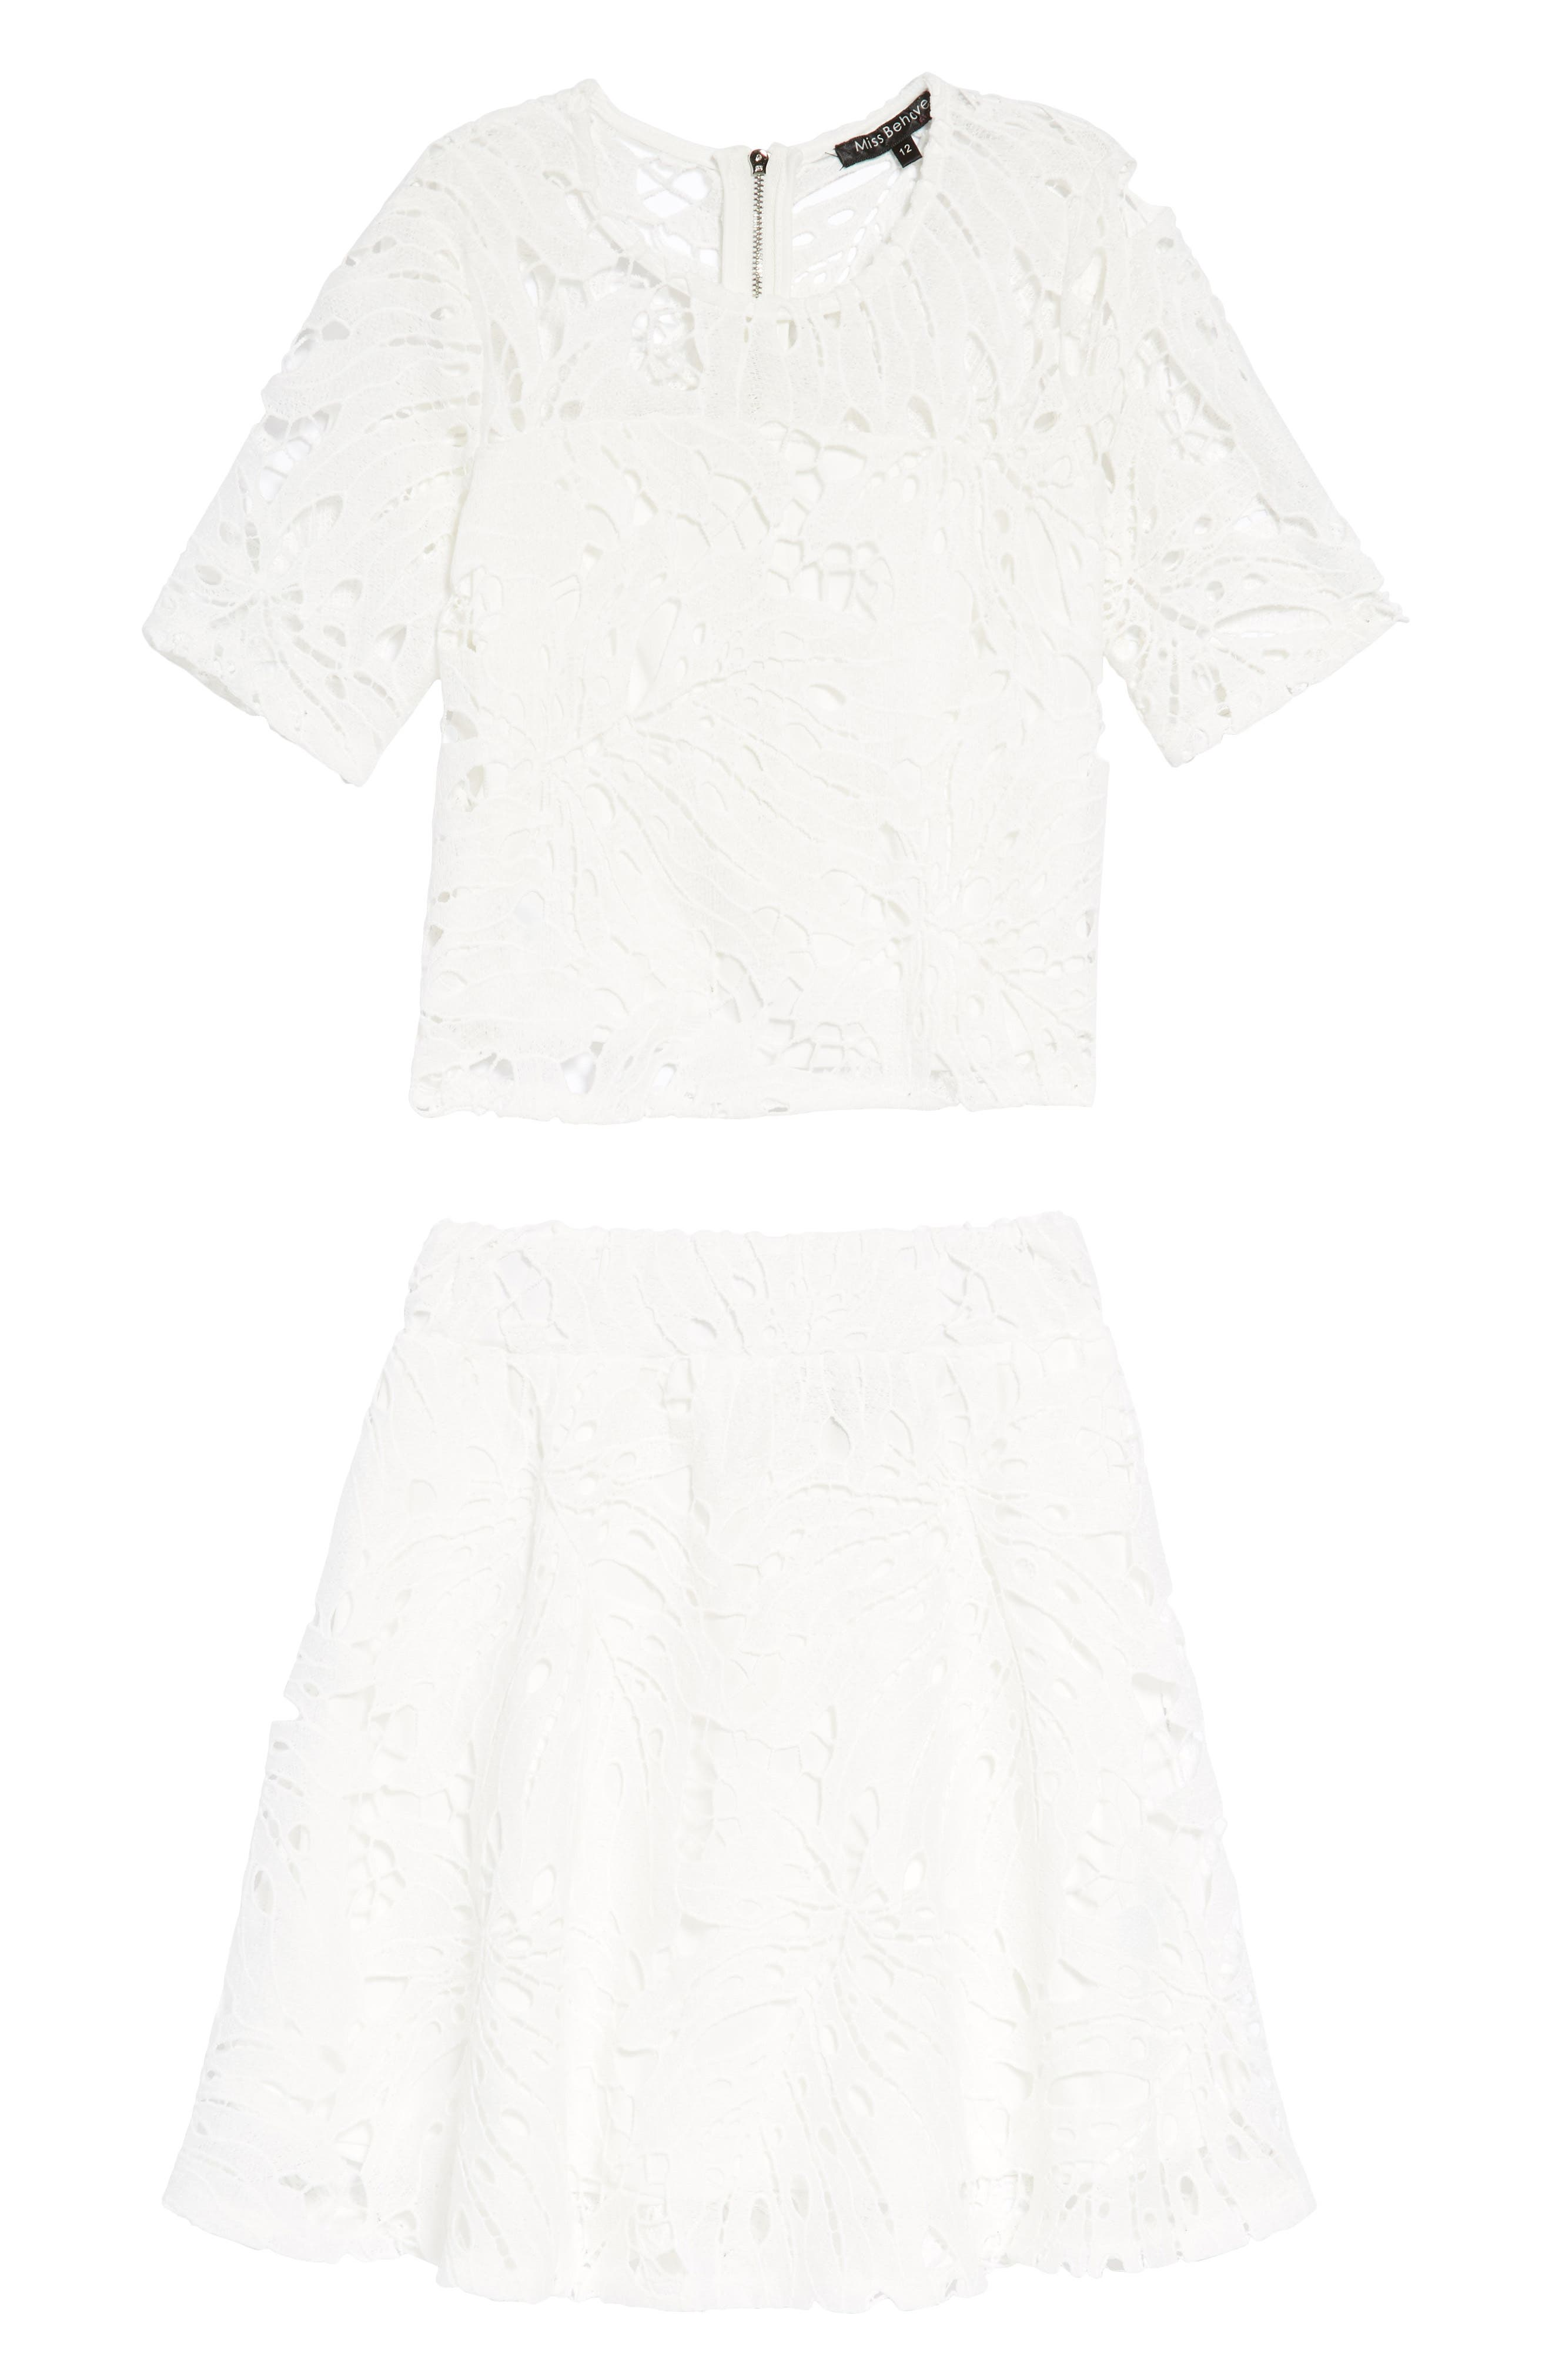 Miss Behave Casey Two-Piece Lace Dress (Big Girls)